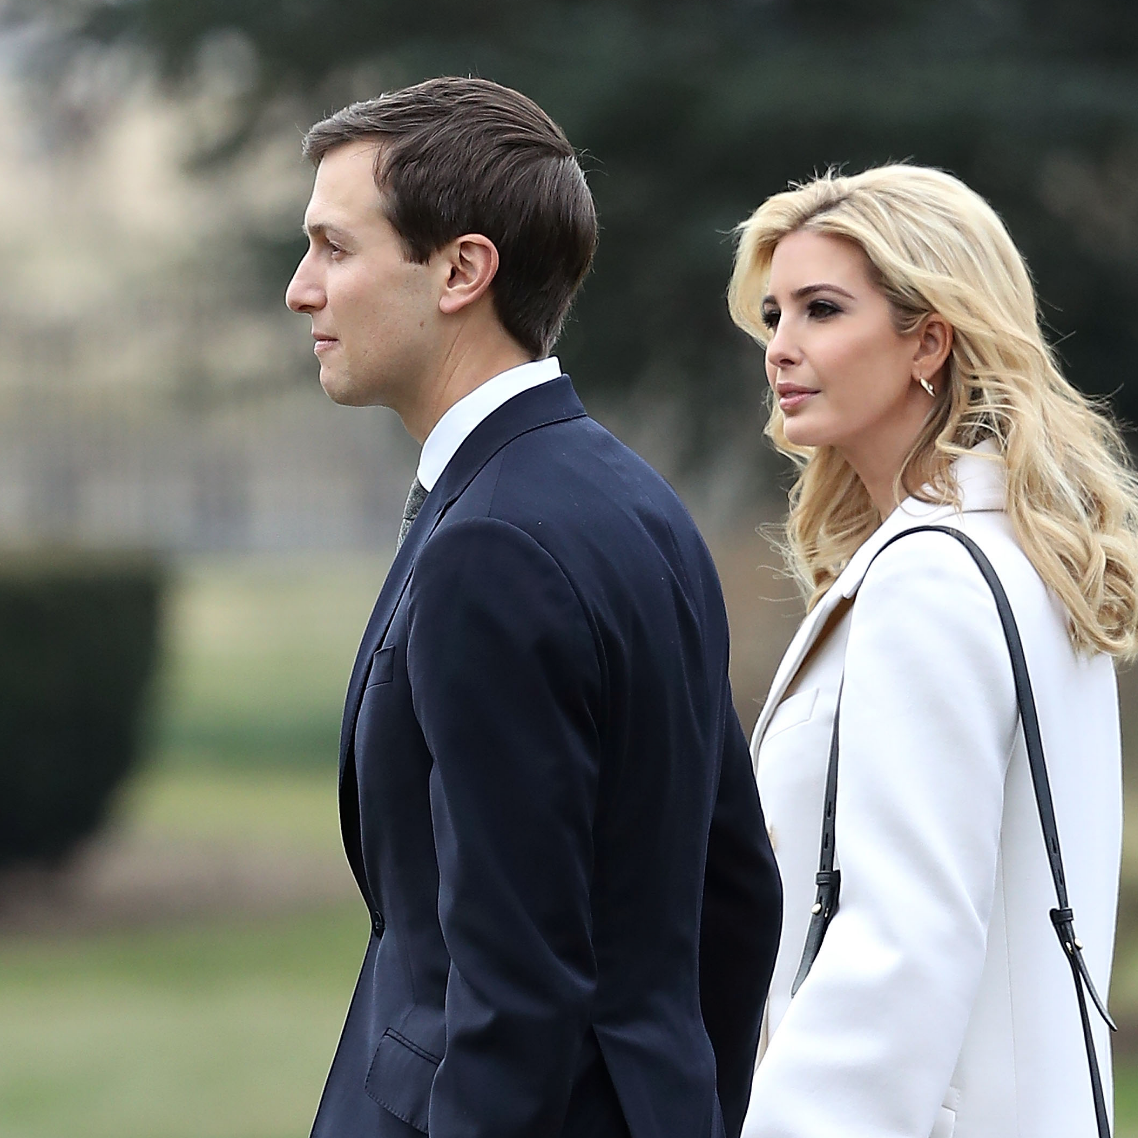 Cecile Richards: Jared and Ivanka Offered Planned Parenthood More Funding in Exchange for Stopping Abortions